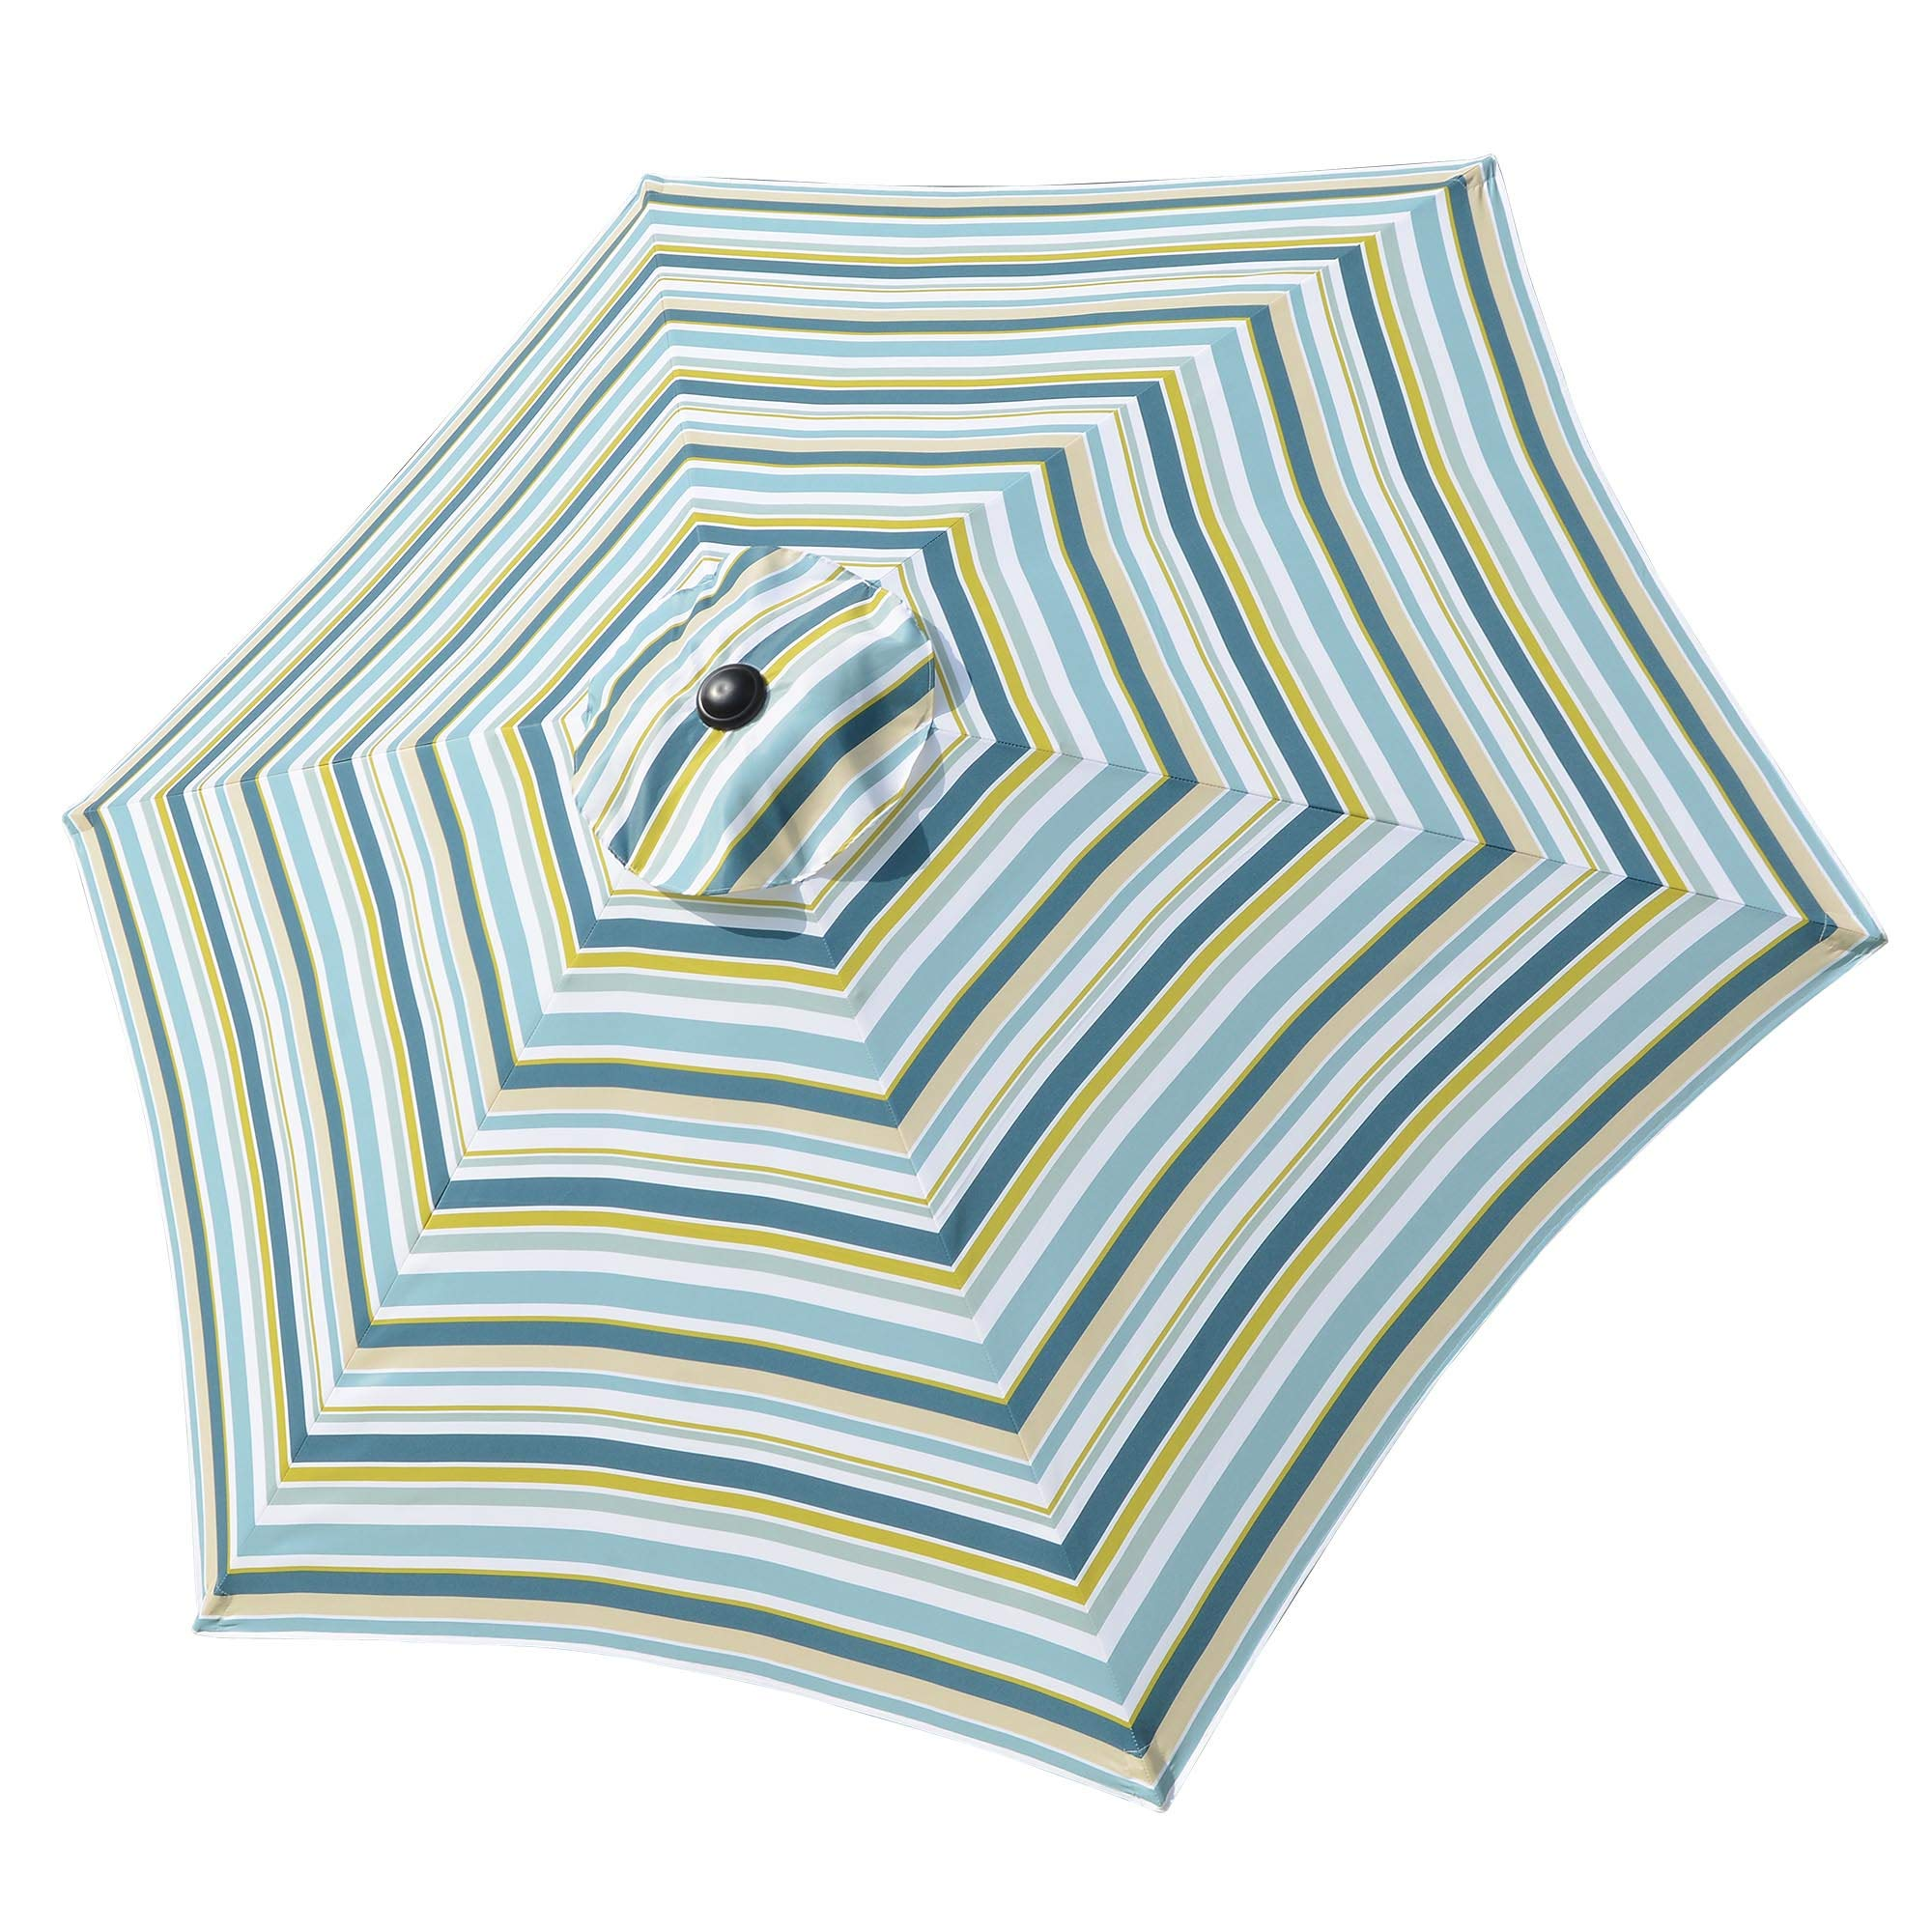 Yescom 9 Ft Patio Umbrella Replacement Canopy Market Table Top Sunshade Cover Garden